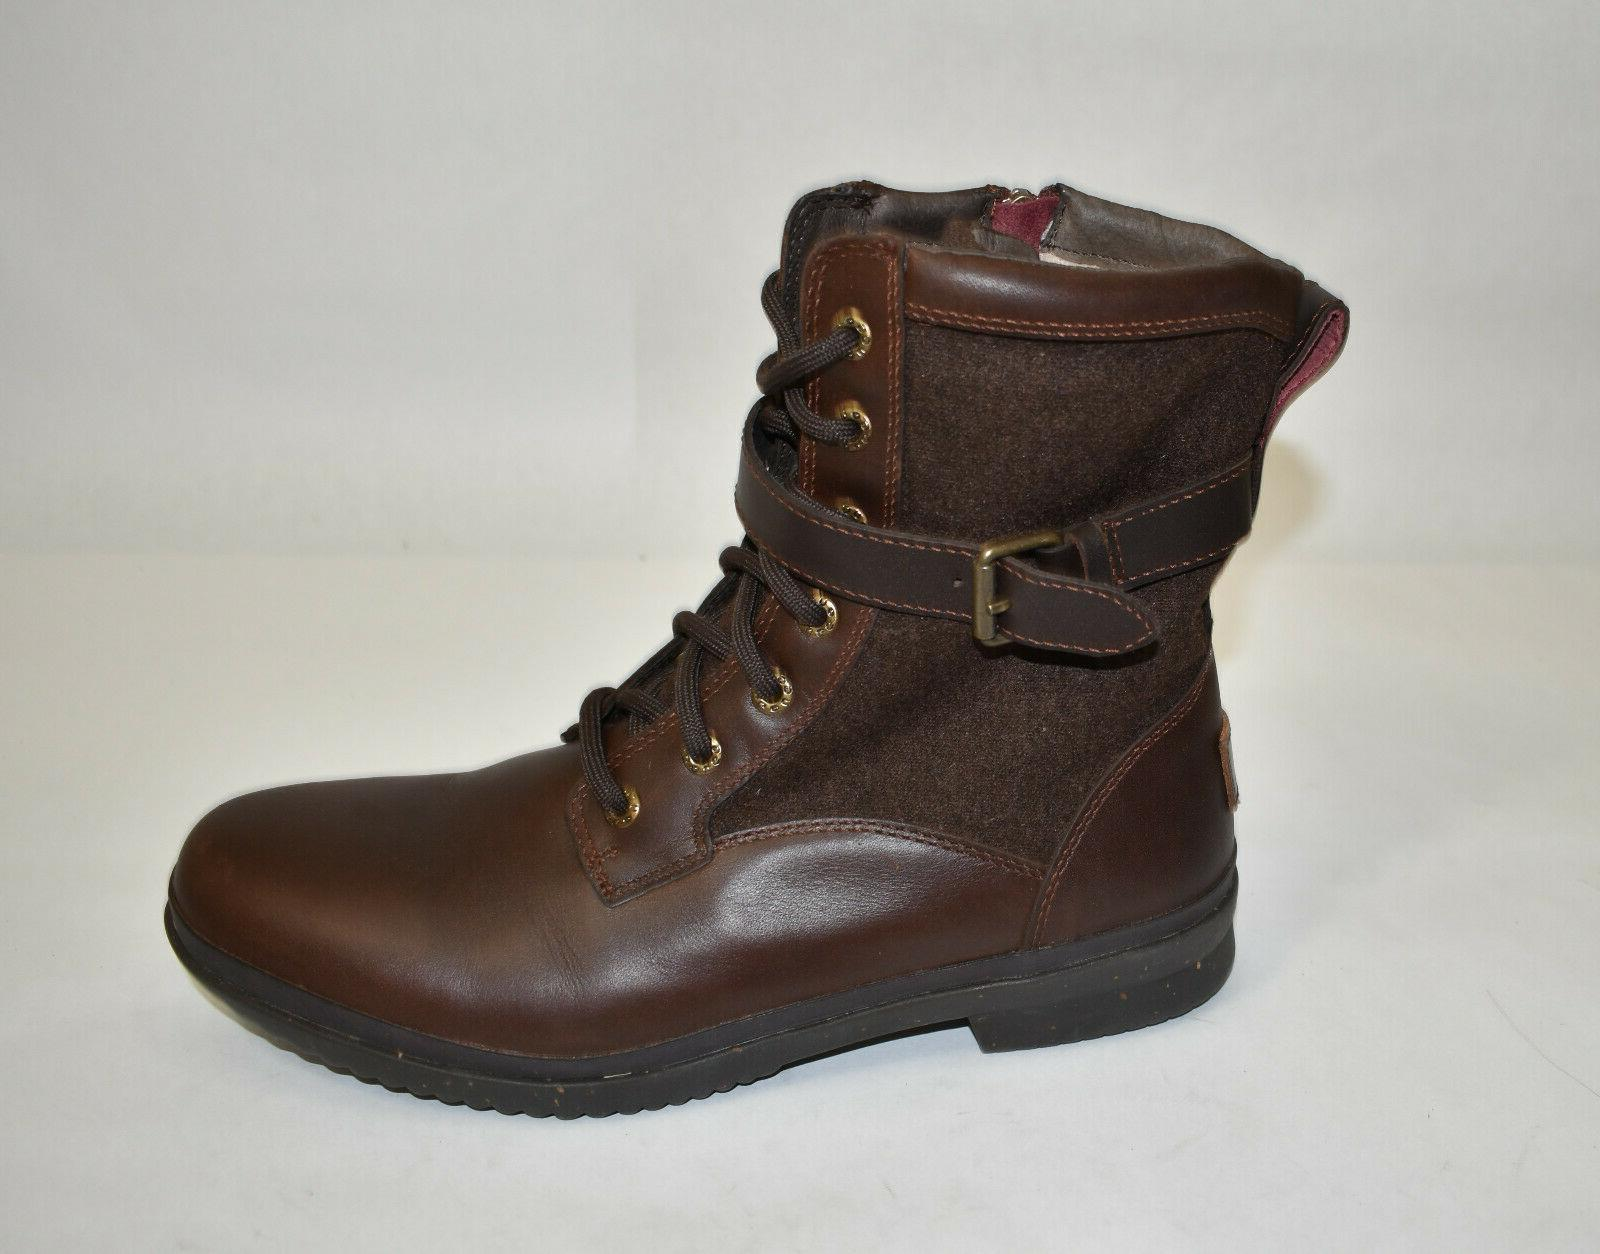 New! Kesey Boot Leather 9